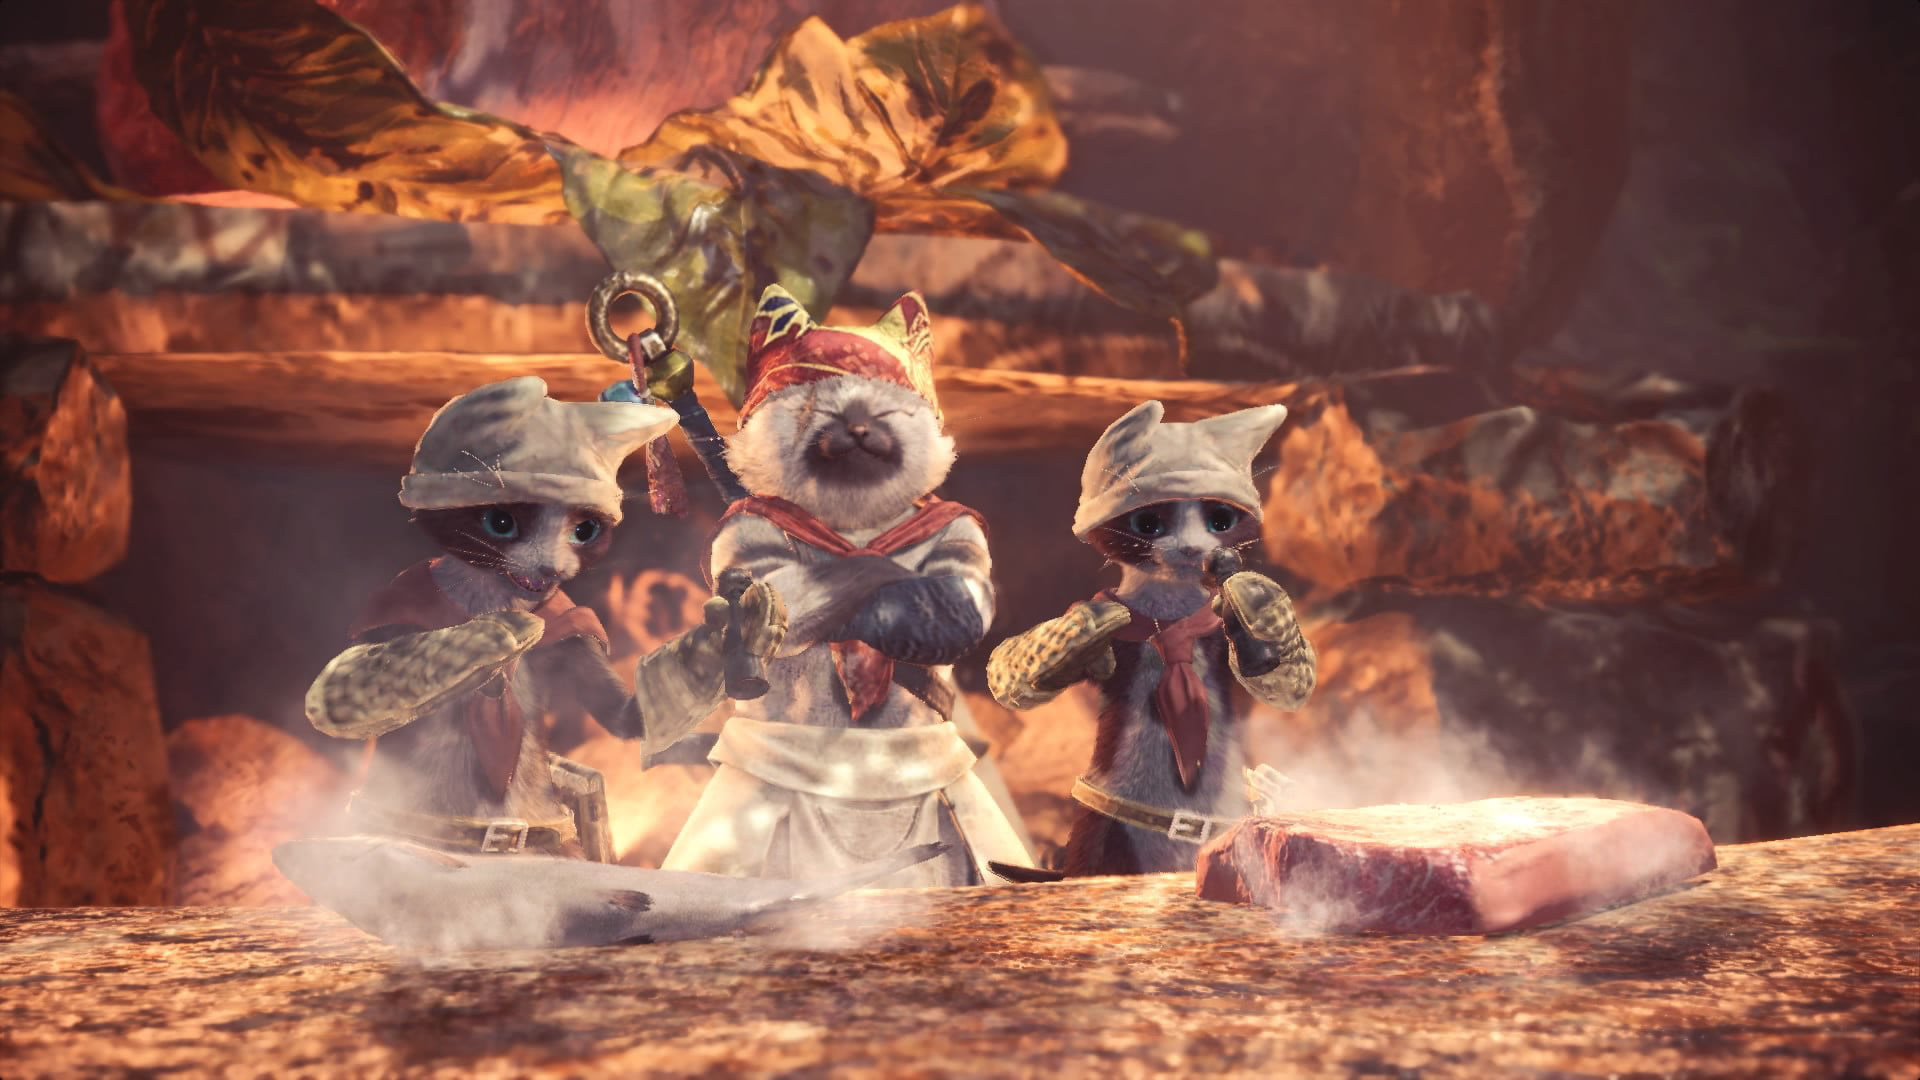 Monster Hunter: World - How To Get All 6 Palico Gadgets